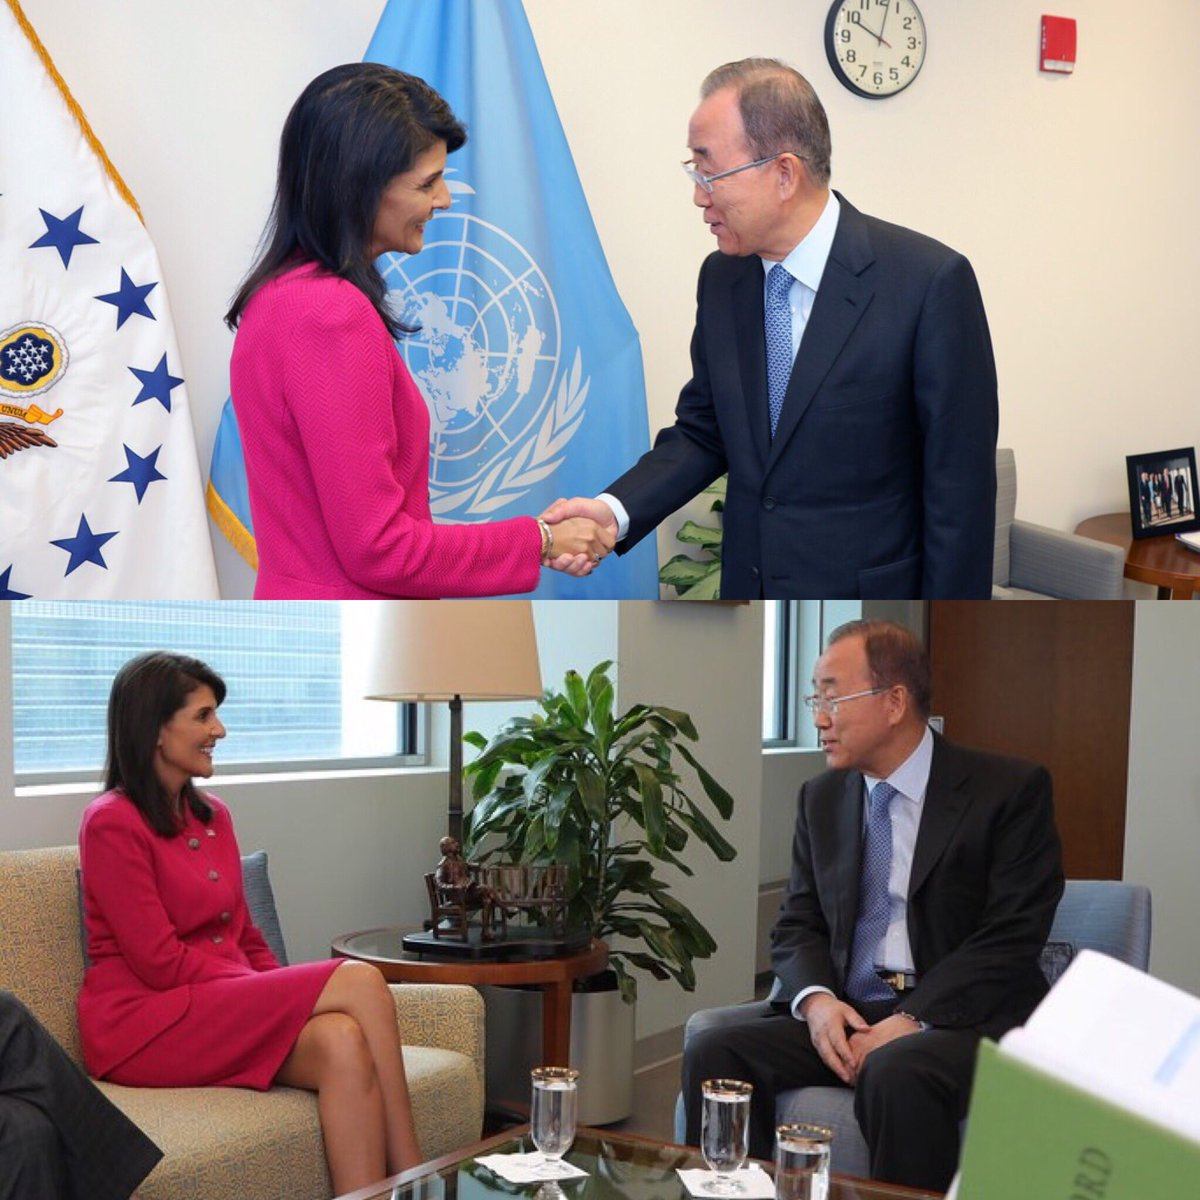 US Envoy to the UN Nikki Haley (left) meeting former UN Secretary-General Ban Ki-Moon.